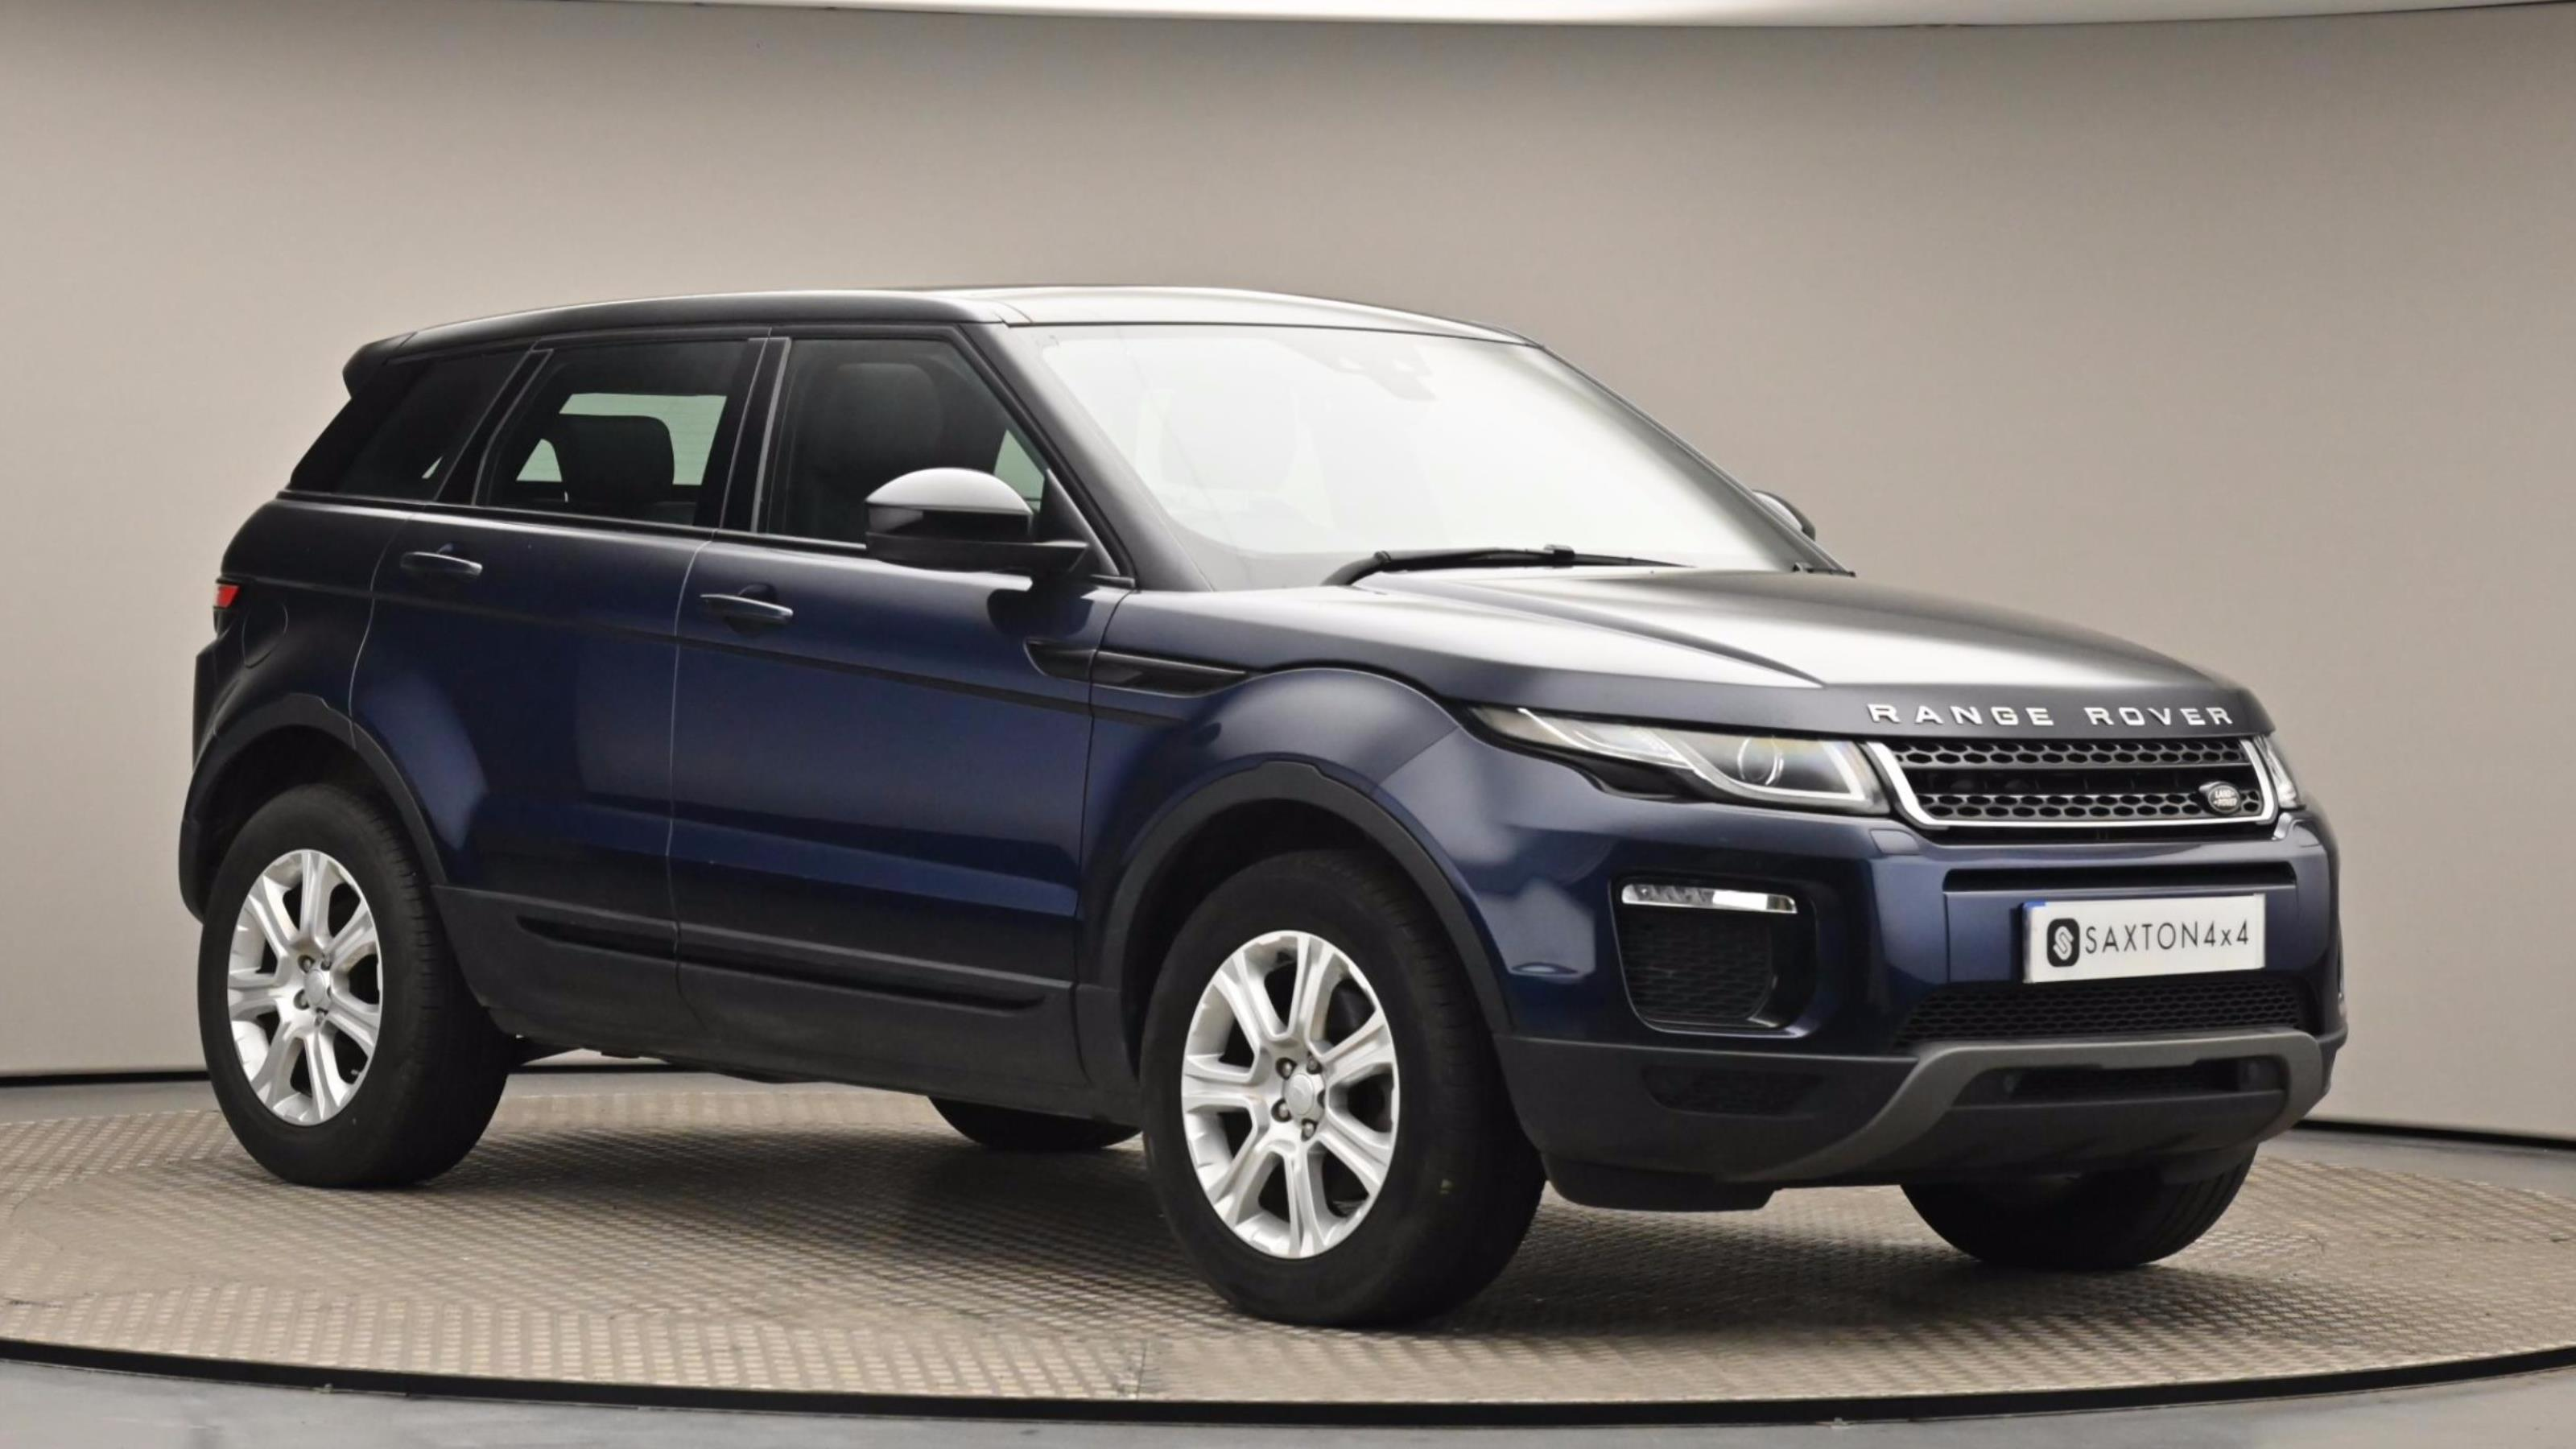 Used 2017 Land Rover RANGE ROVER EVOQUE 2.0 TD4 SE Tech 5dr Auto at Saxton4x4